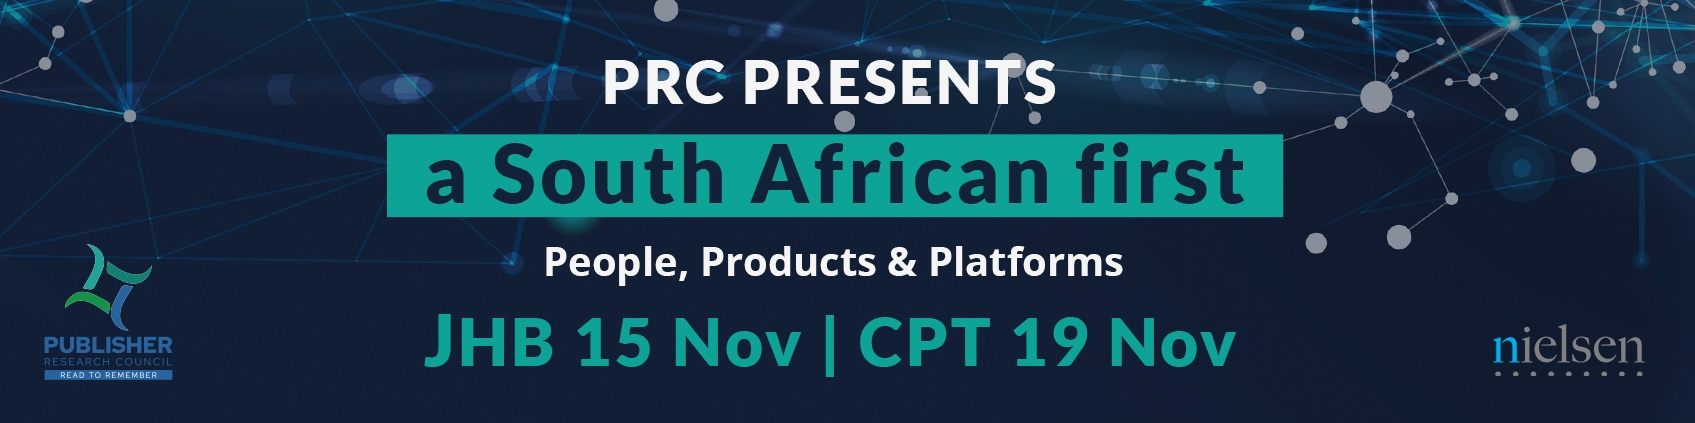 The Publisher Research Council (PRC) is hosting SA's first event to showcase the power of PAMS BRANDS, People, Products and Platforms data.